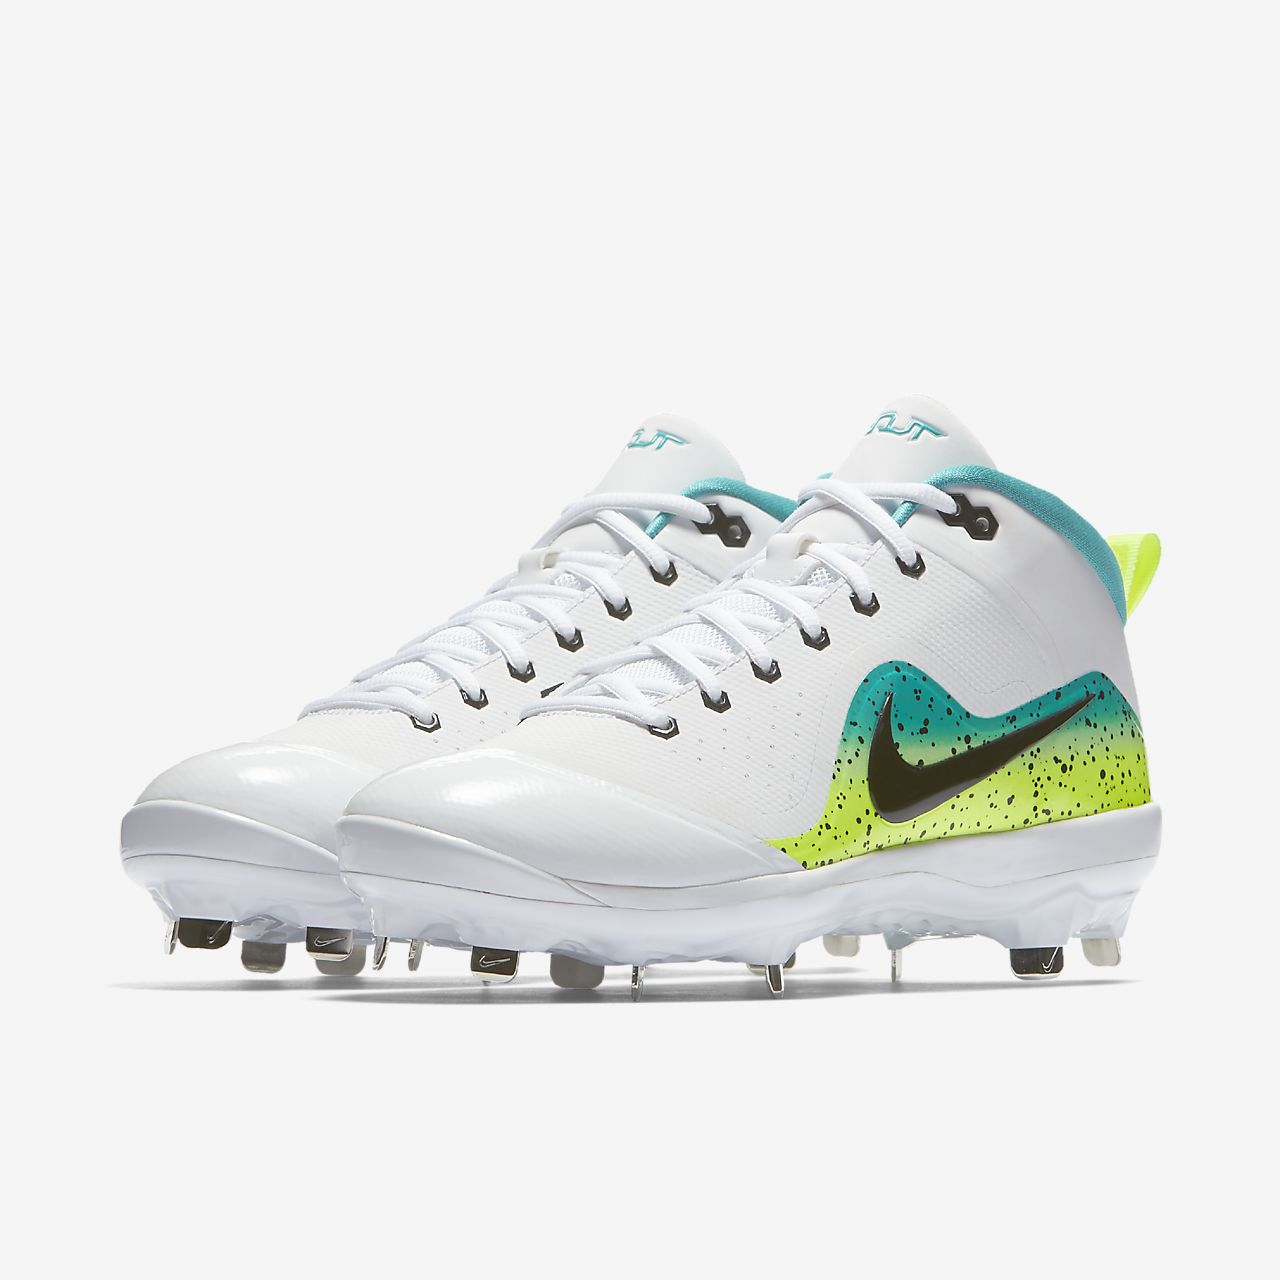 ... Nike Force Air Trout 4 Pro Mahi Men\u0027s Baseball Cleat